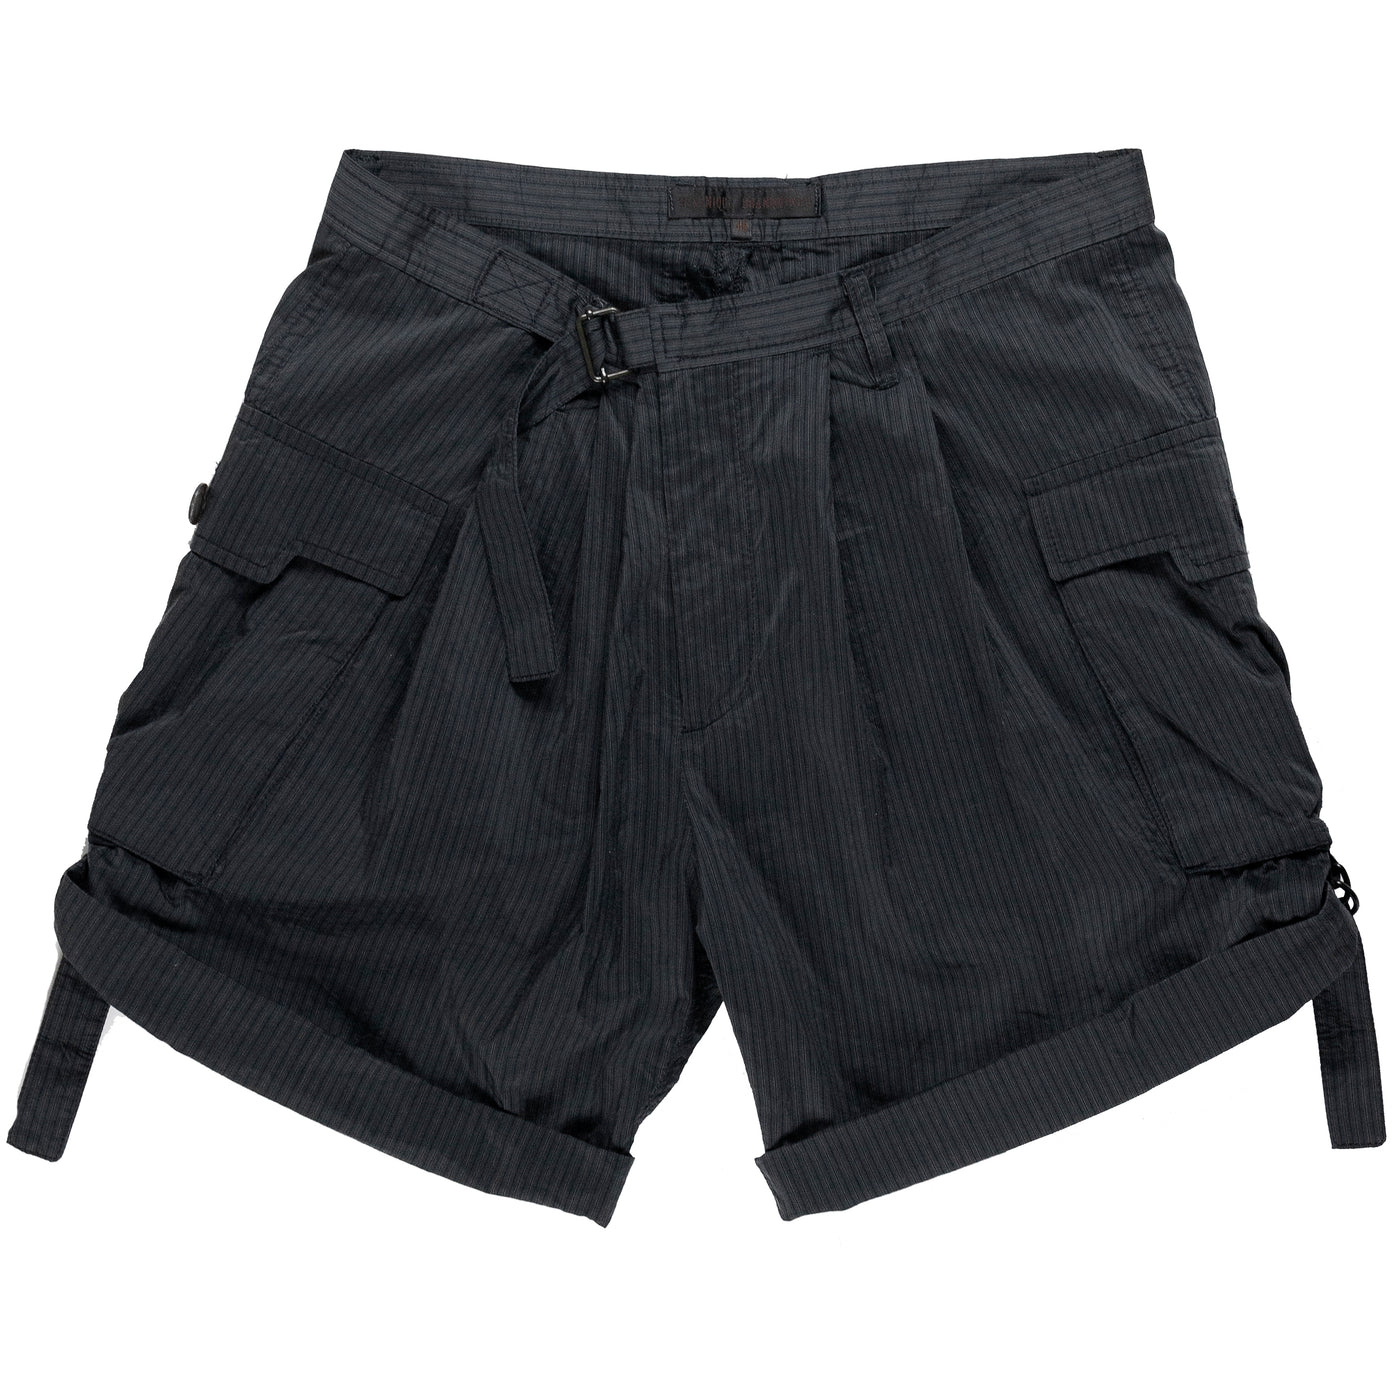 VERONIQUE BRANQUINHO MAN CINCHED CARGO SHORTS - SS08